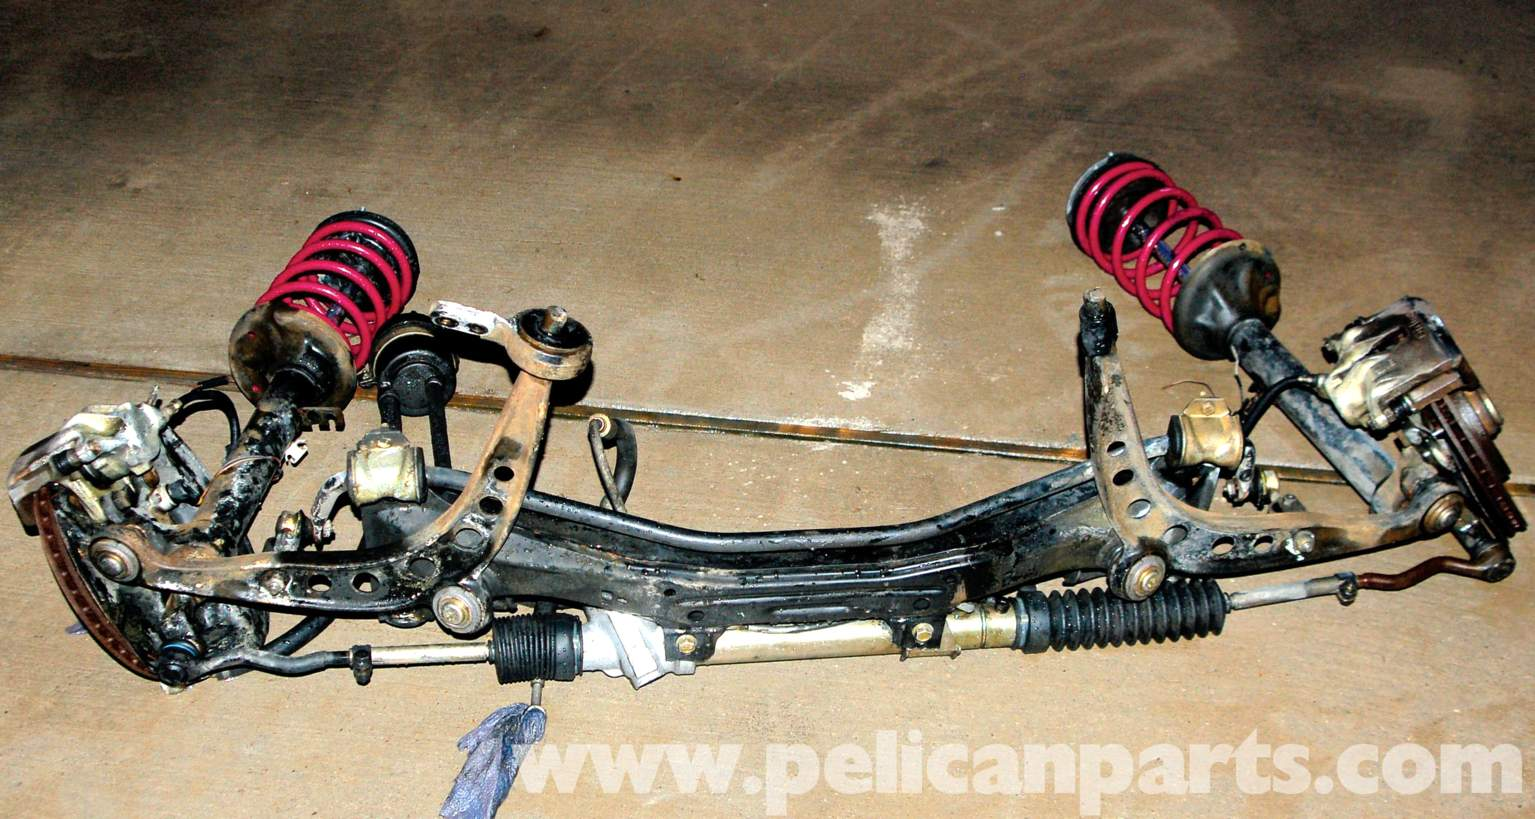 Pelican Cartech Bmw 3 Series E30 Guest Technical Article